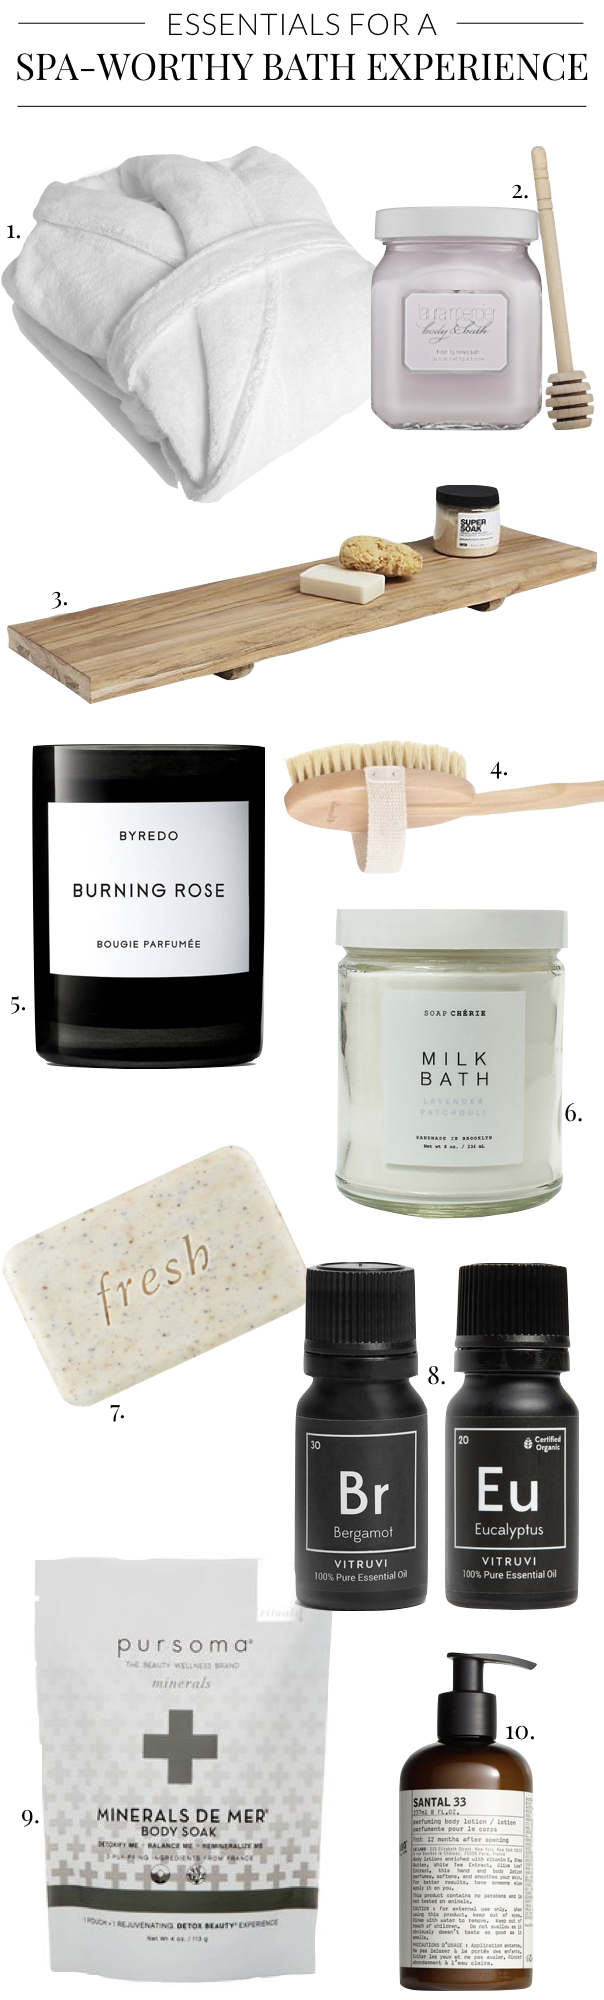 Bath Essentials, How to take the perfect bath, at home spa essentials, bath oils, bath salts, relaxing bath essentials, self pampering essentials, chic essential oils, bath tray, wood bath tray, bath caddy